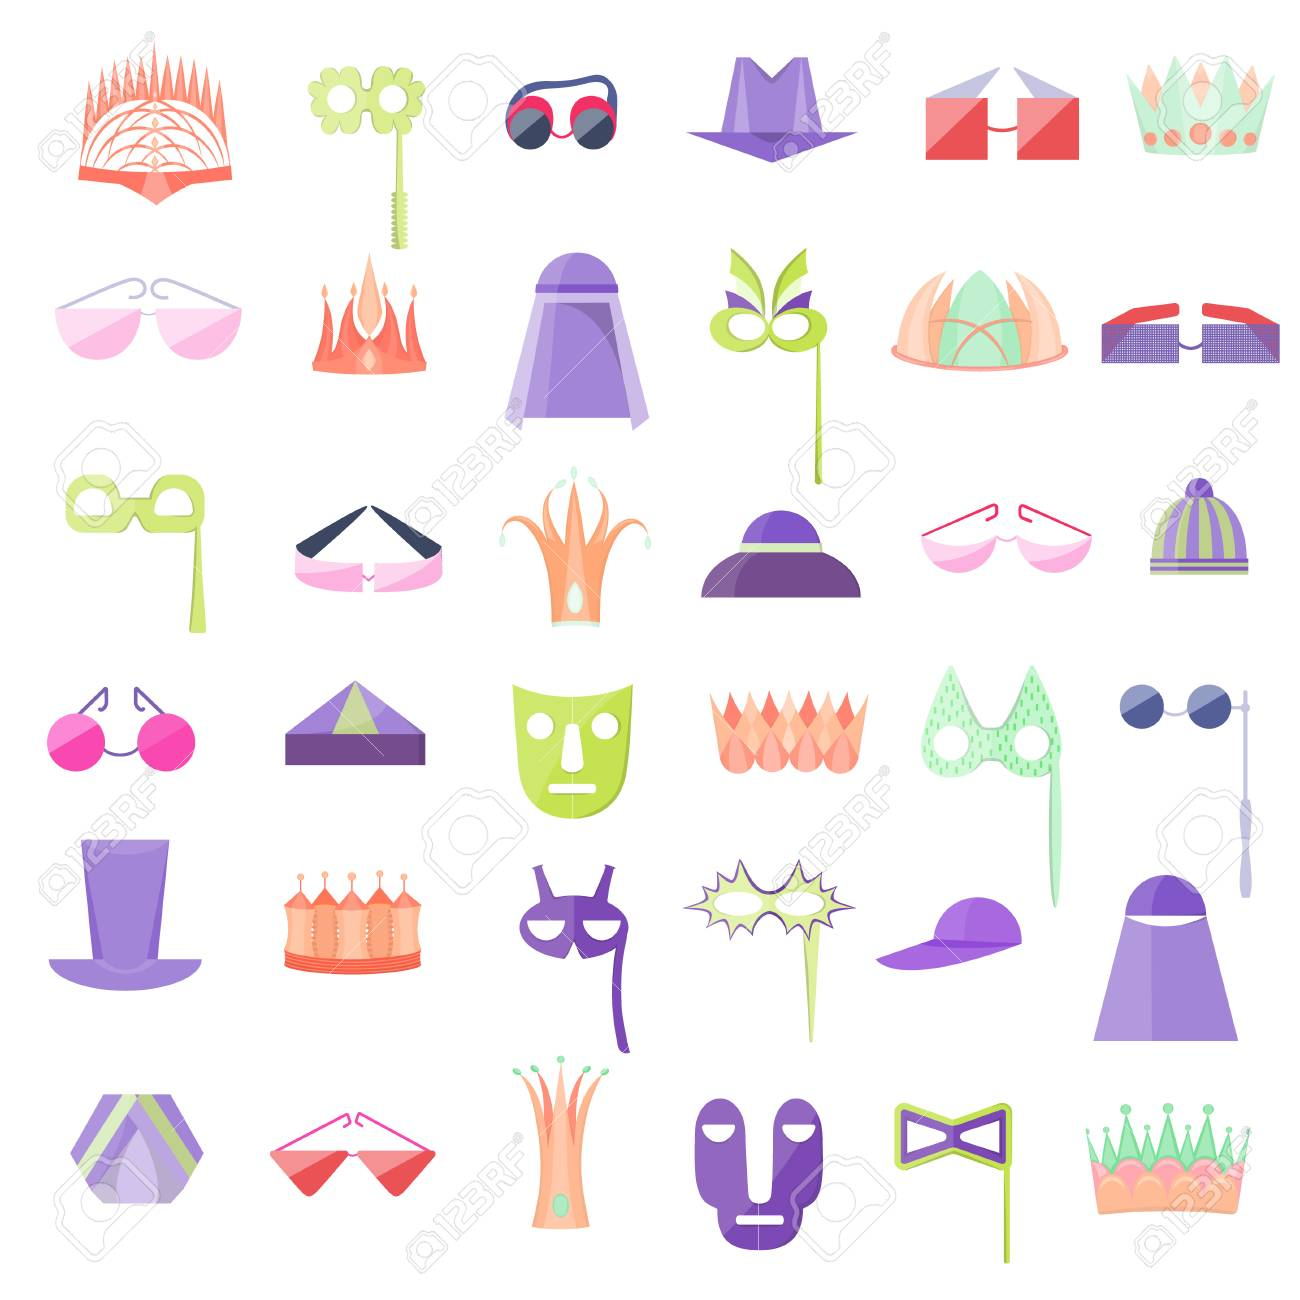 Set with Icon of Hats, Crowns, Glasses and Masks - 110643091